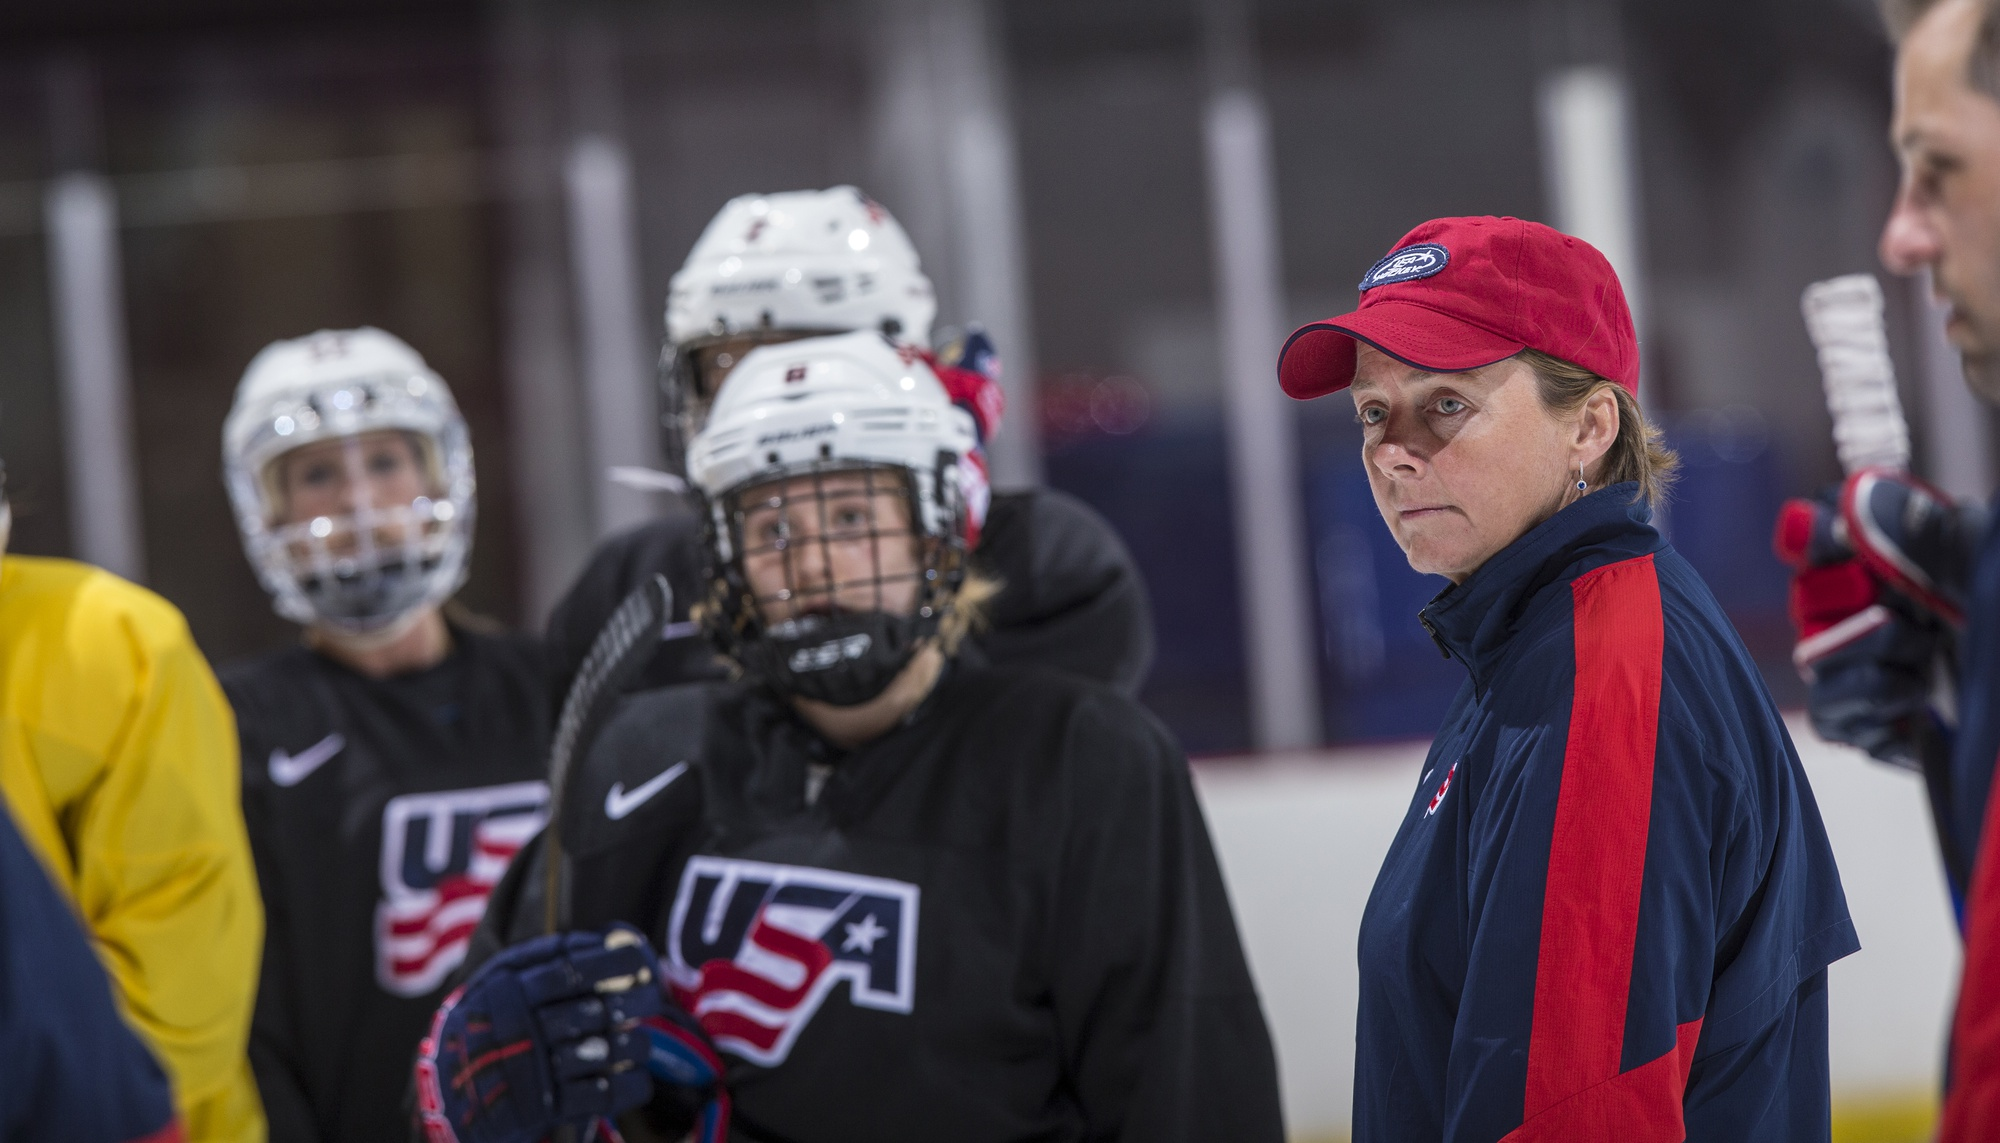 Seen here while the coach of the 2014 USA Women's Olympic Hockey team, coach Stone seeks her second national championship at the helm of the Harvard women's ice hockey program.